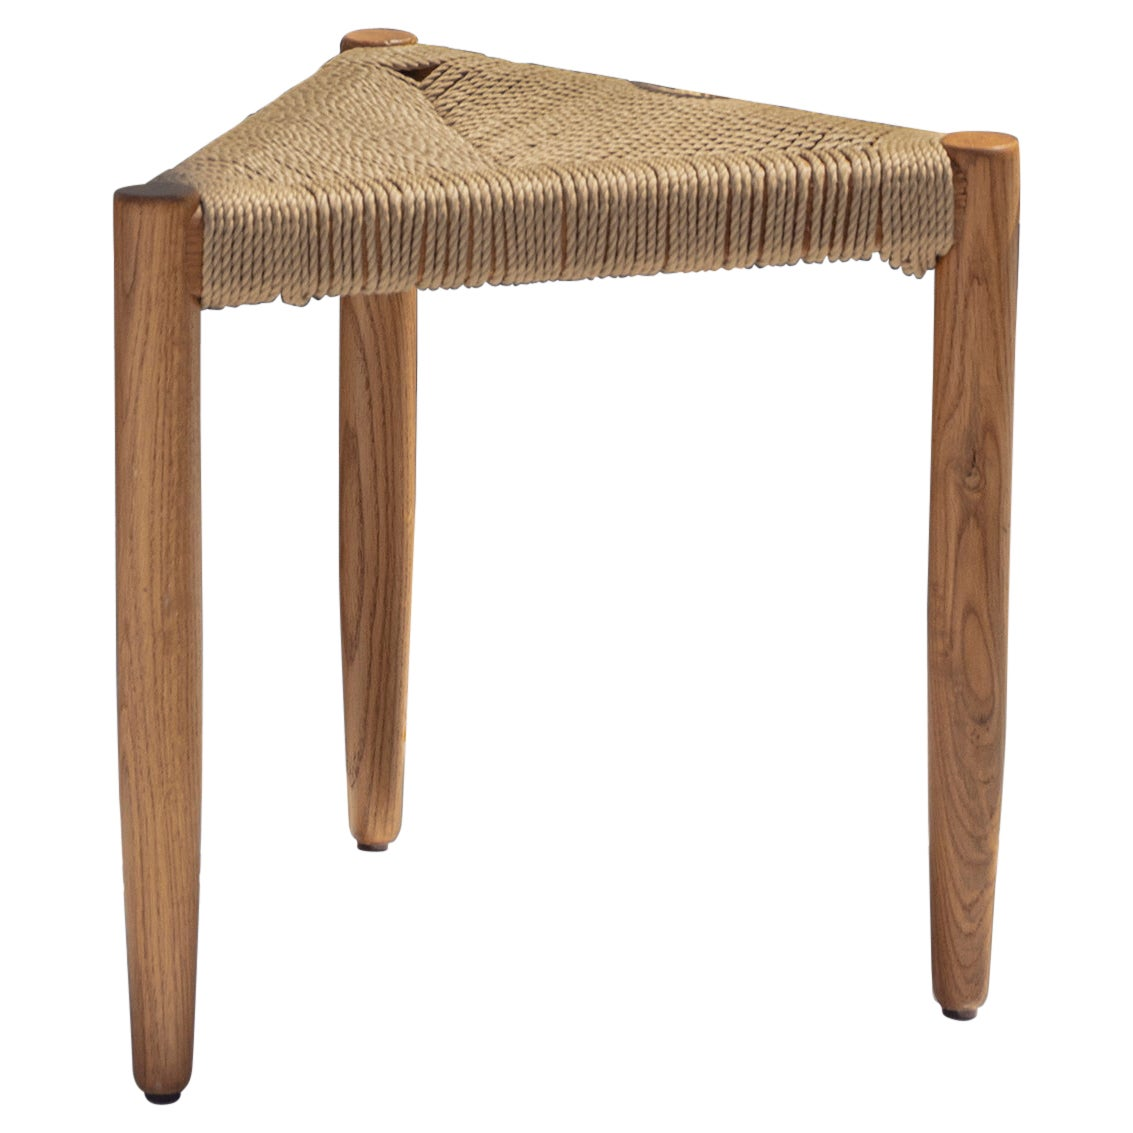 """Contemporary Handcrafted Solid Wood and Rope Tripod Stool """"Yiaros"""" by Anaktae"""